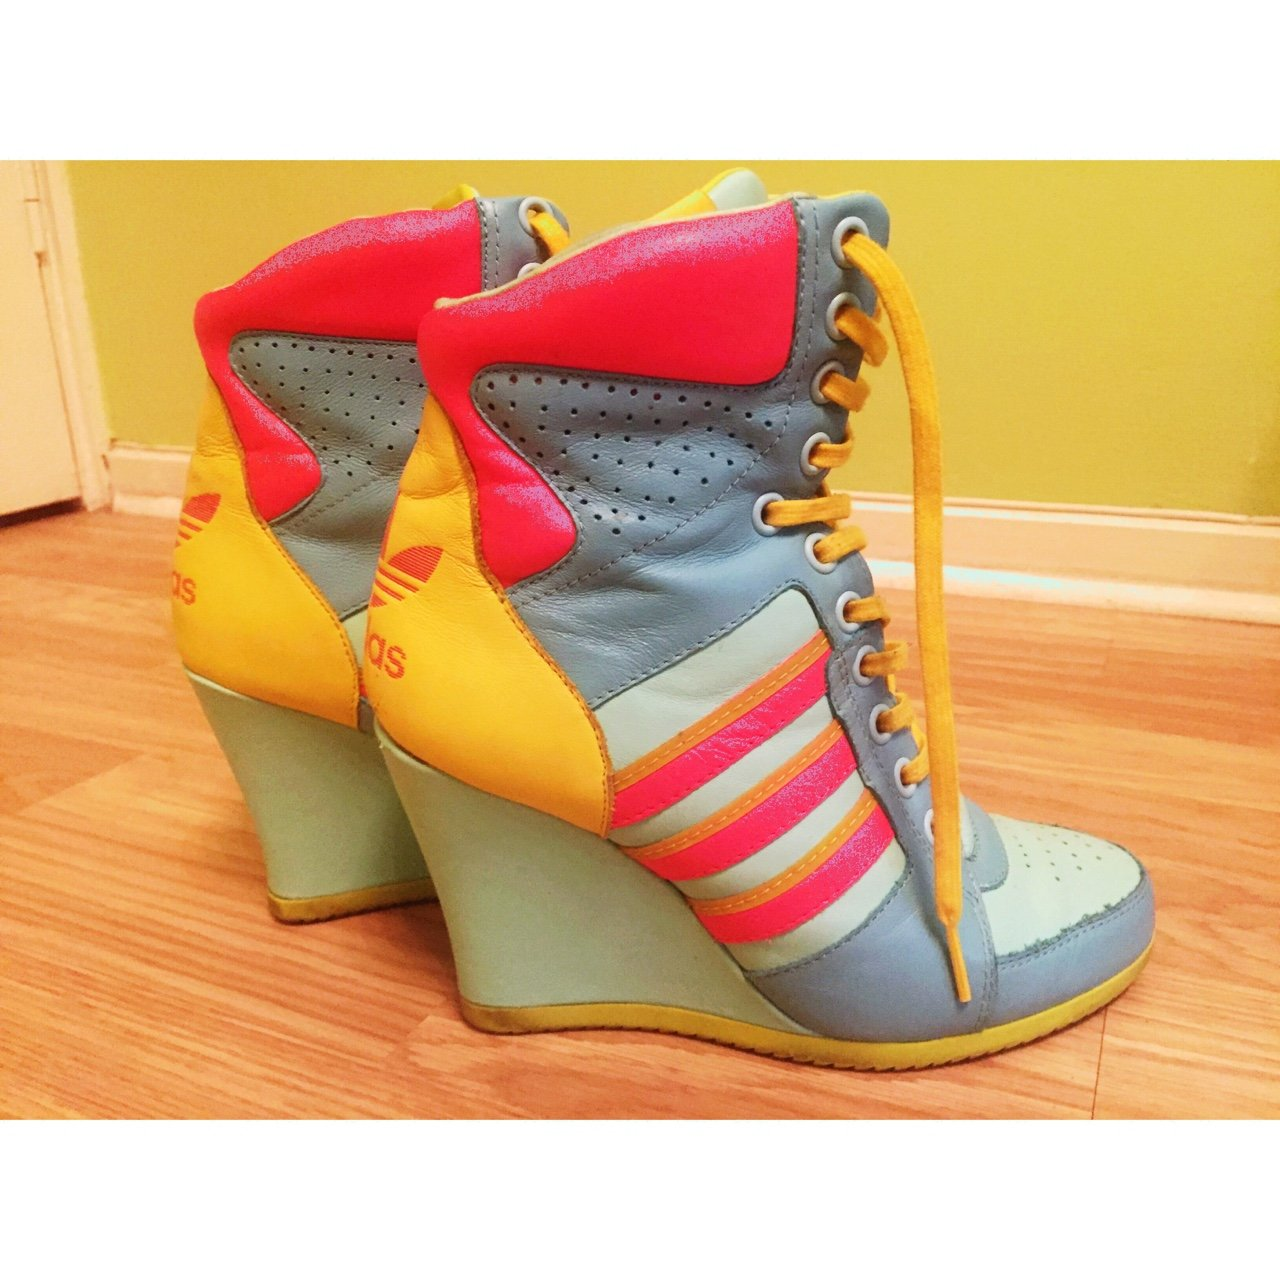 4efde5ac9351 Adidas! Originals! Jeremy Scott high heel lace up wedge and - Depop